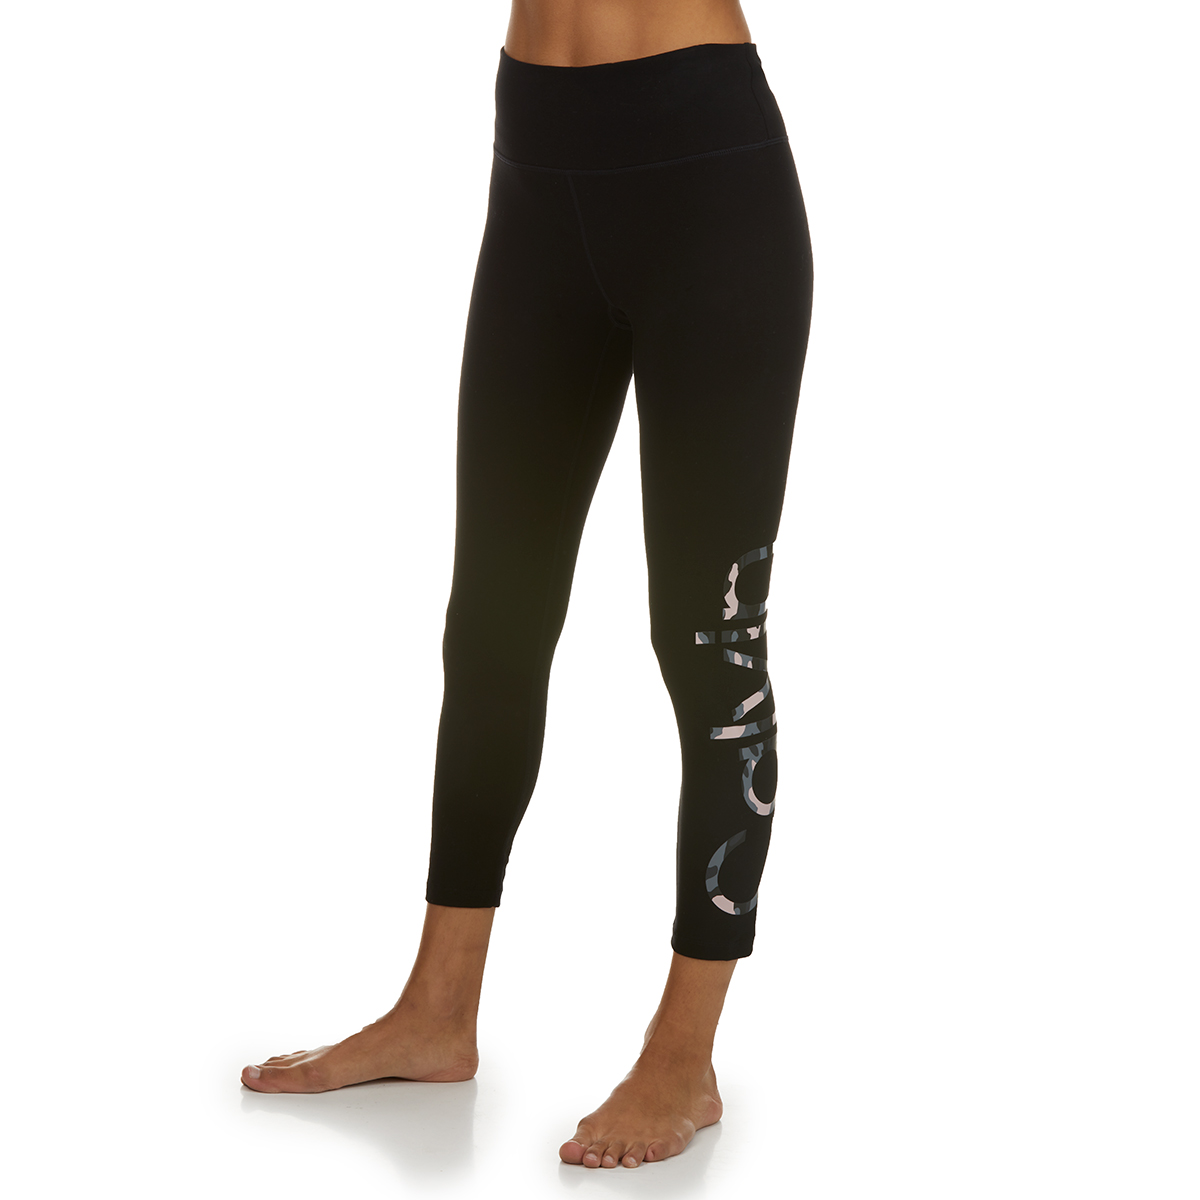 Calvin Klein Women's Performance Logo Leggings - Various Patterns, M